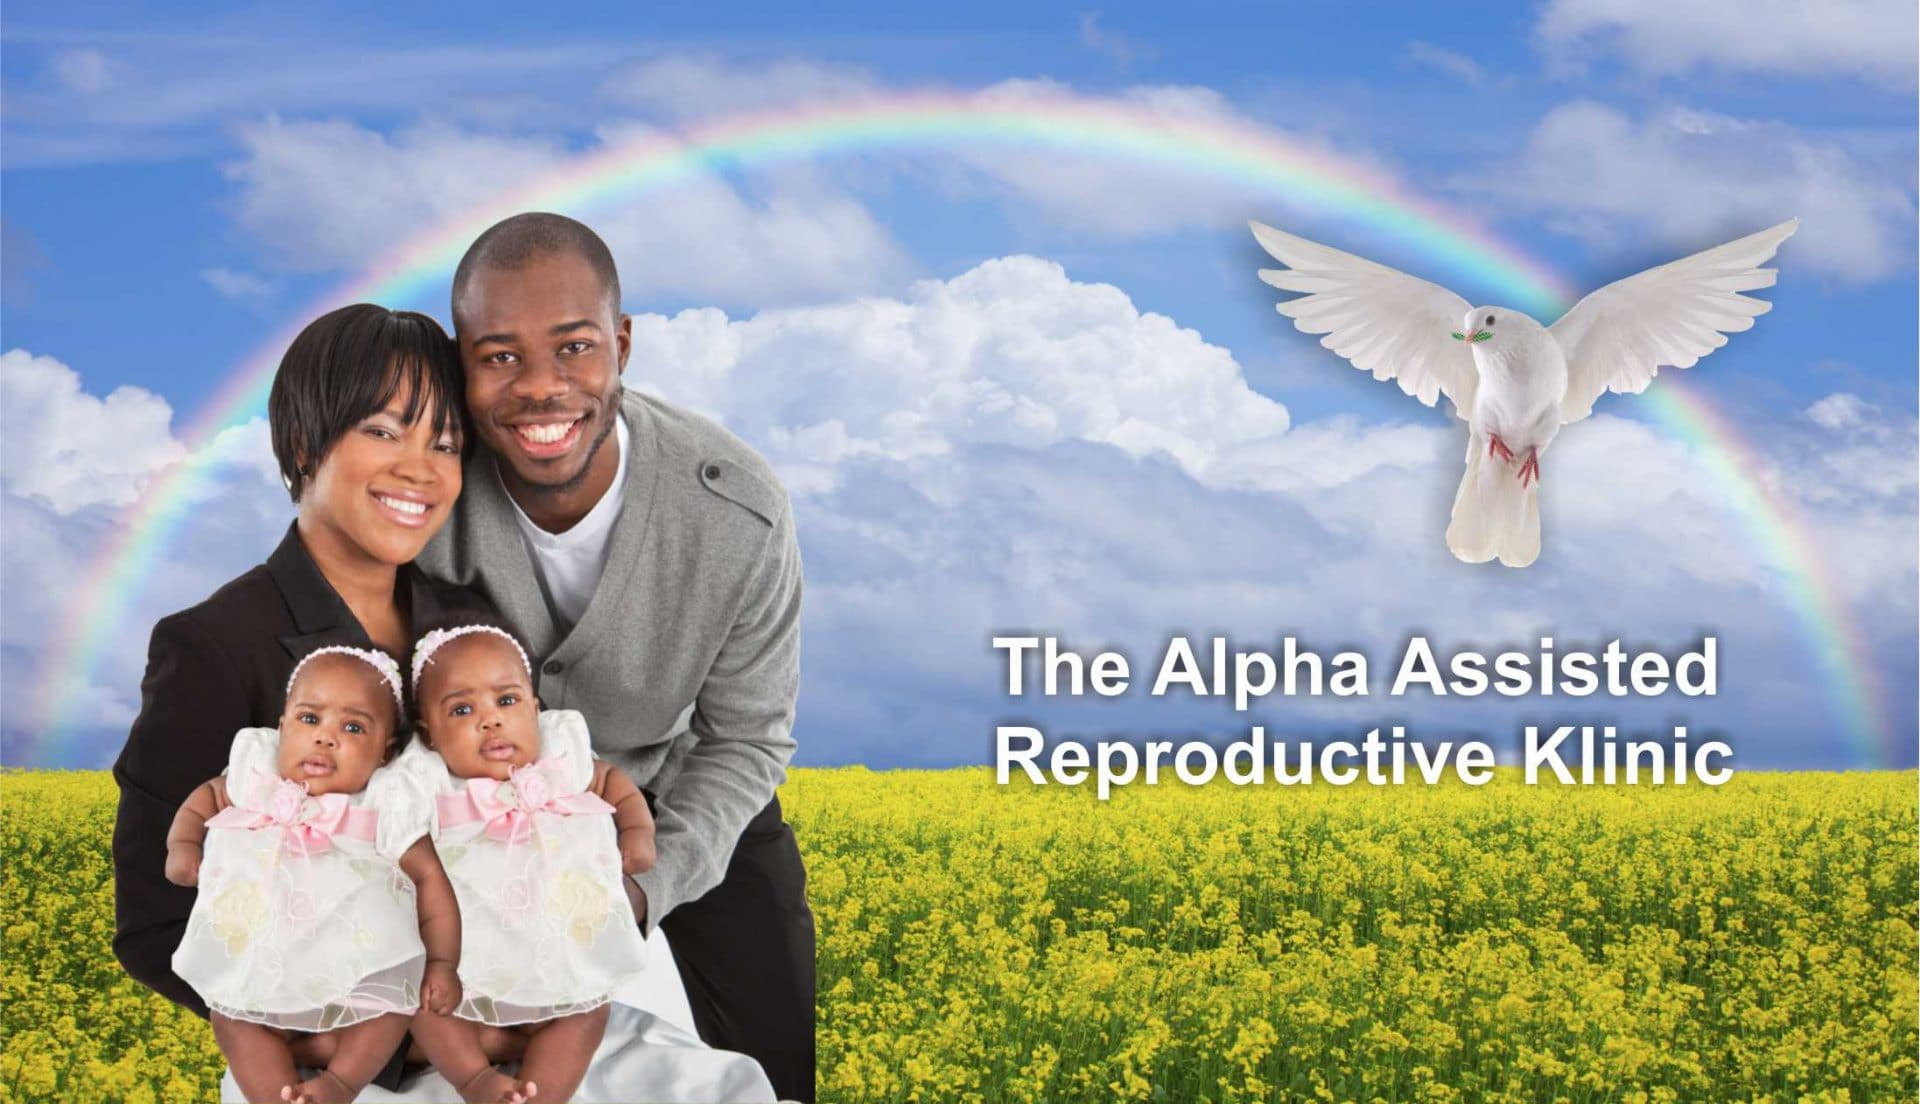 IVF & Fertility Specialists in Nigeria - Assisted Reproductive Technologies in Nigeria